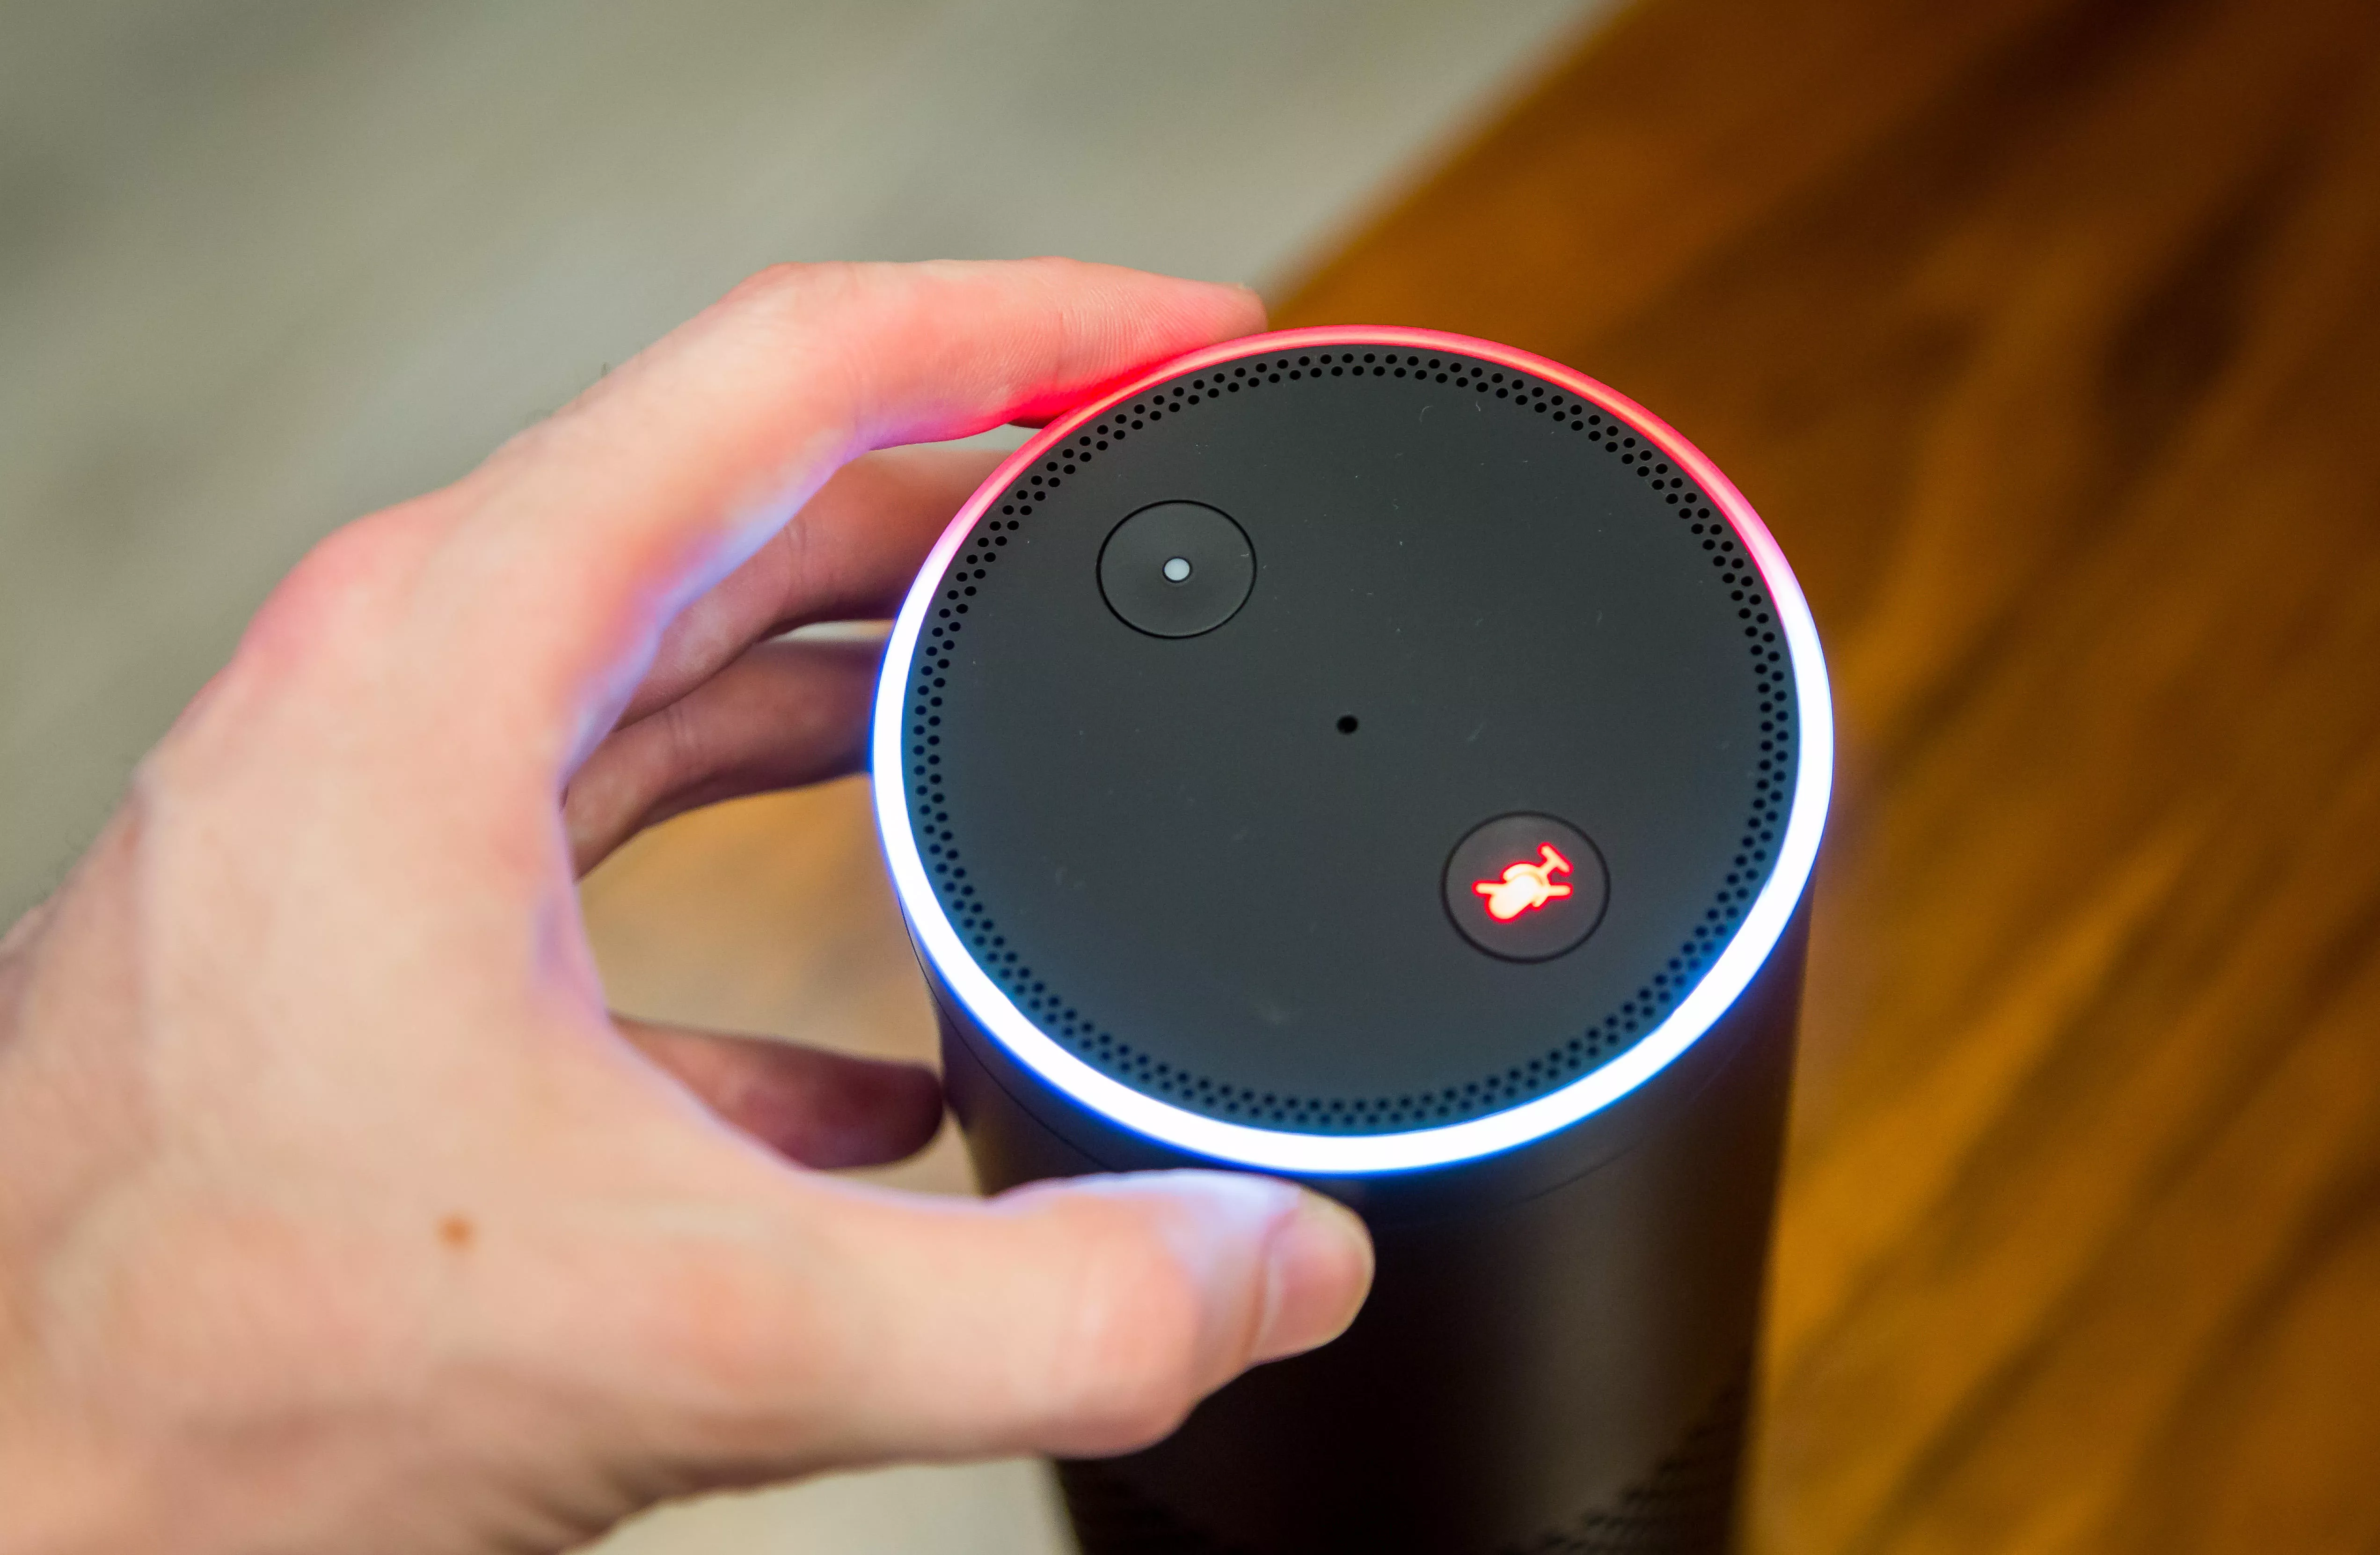 6 essential tips to know for your new Amazon Echo in 2020